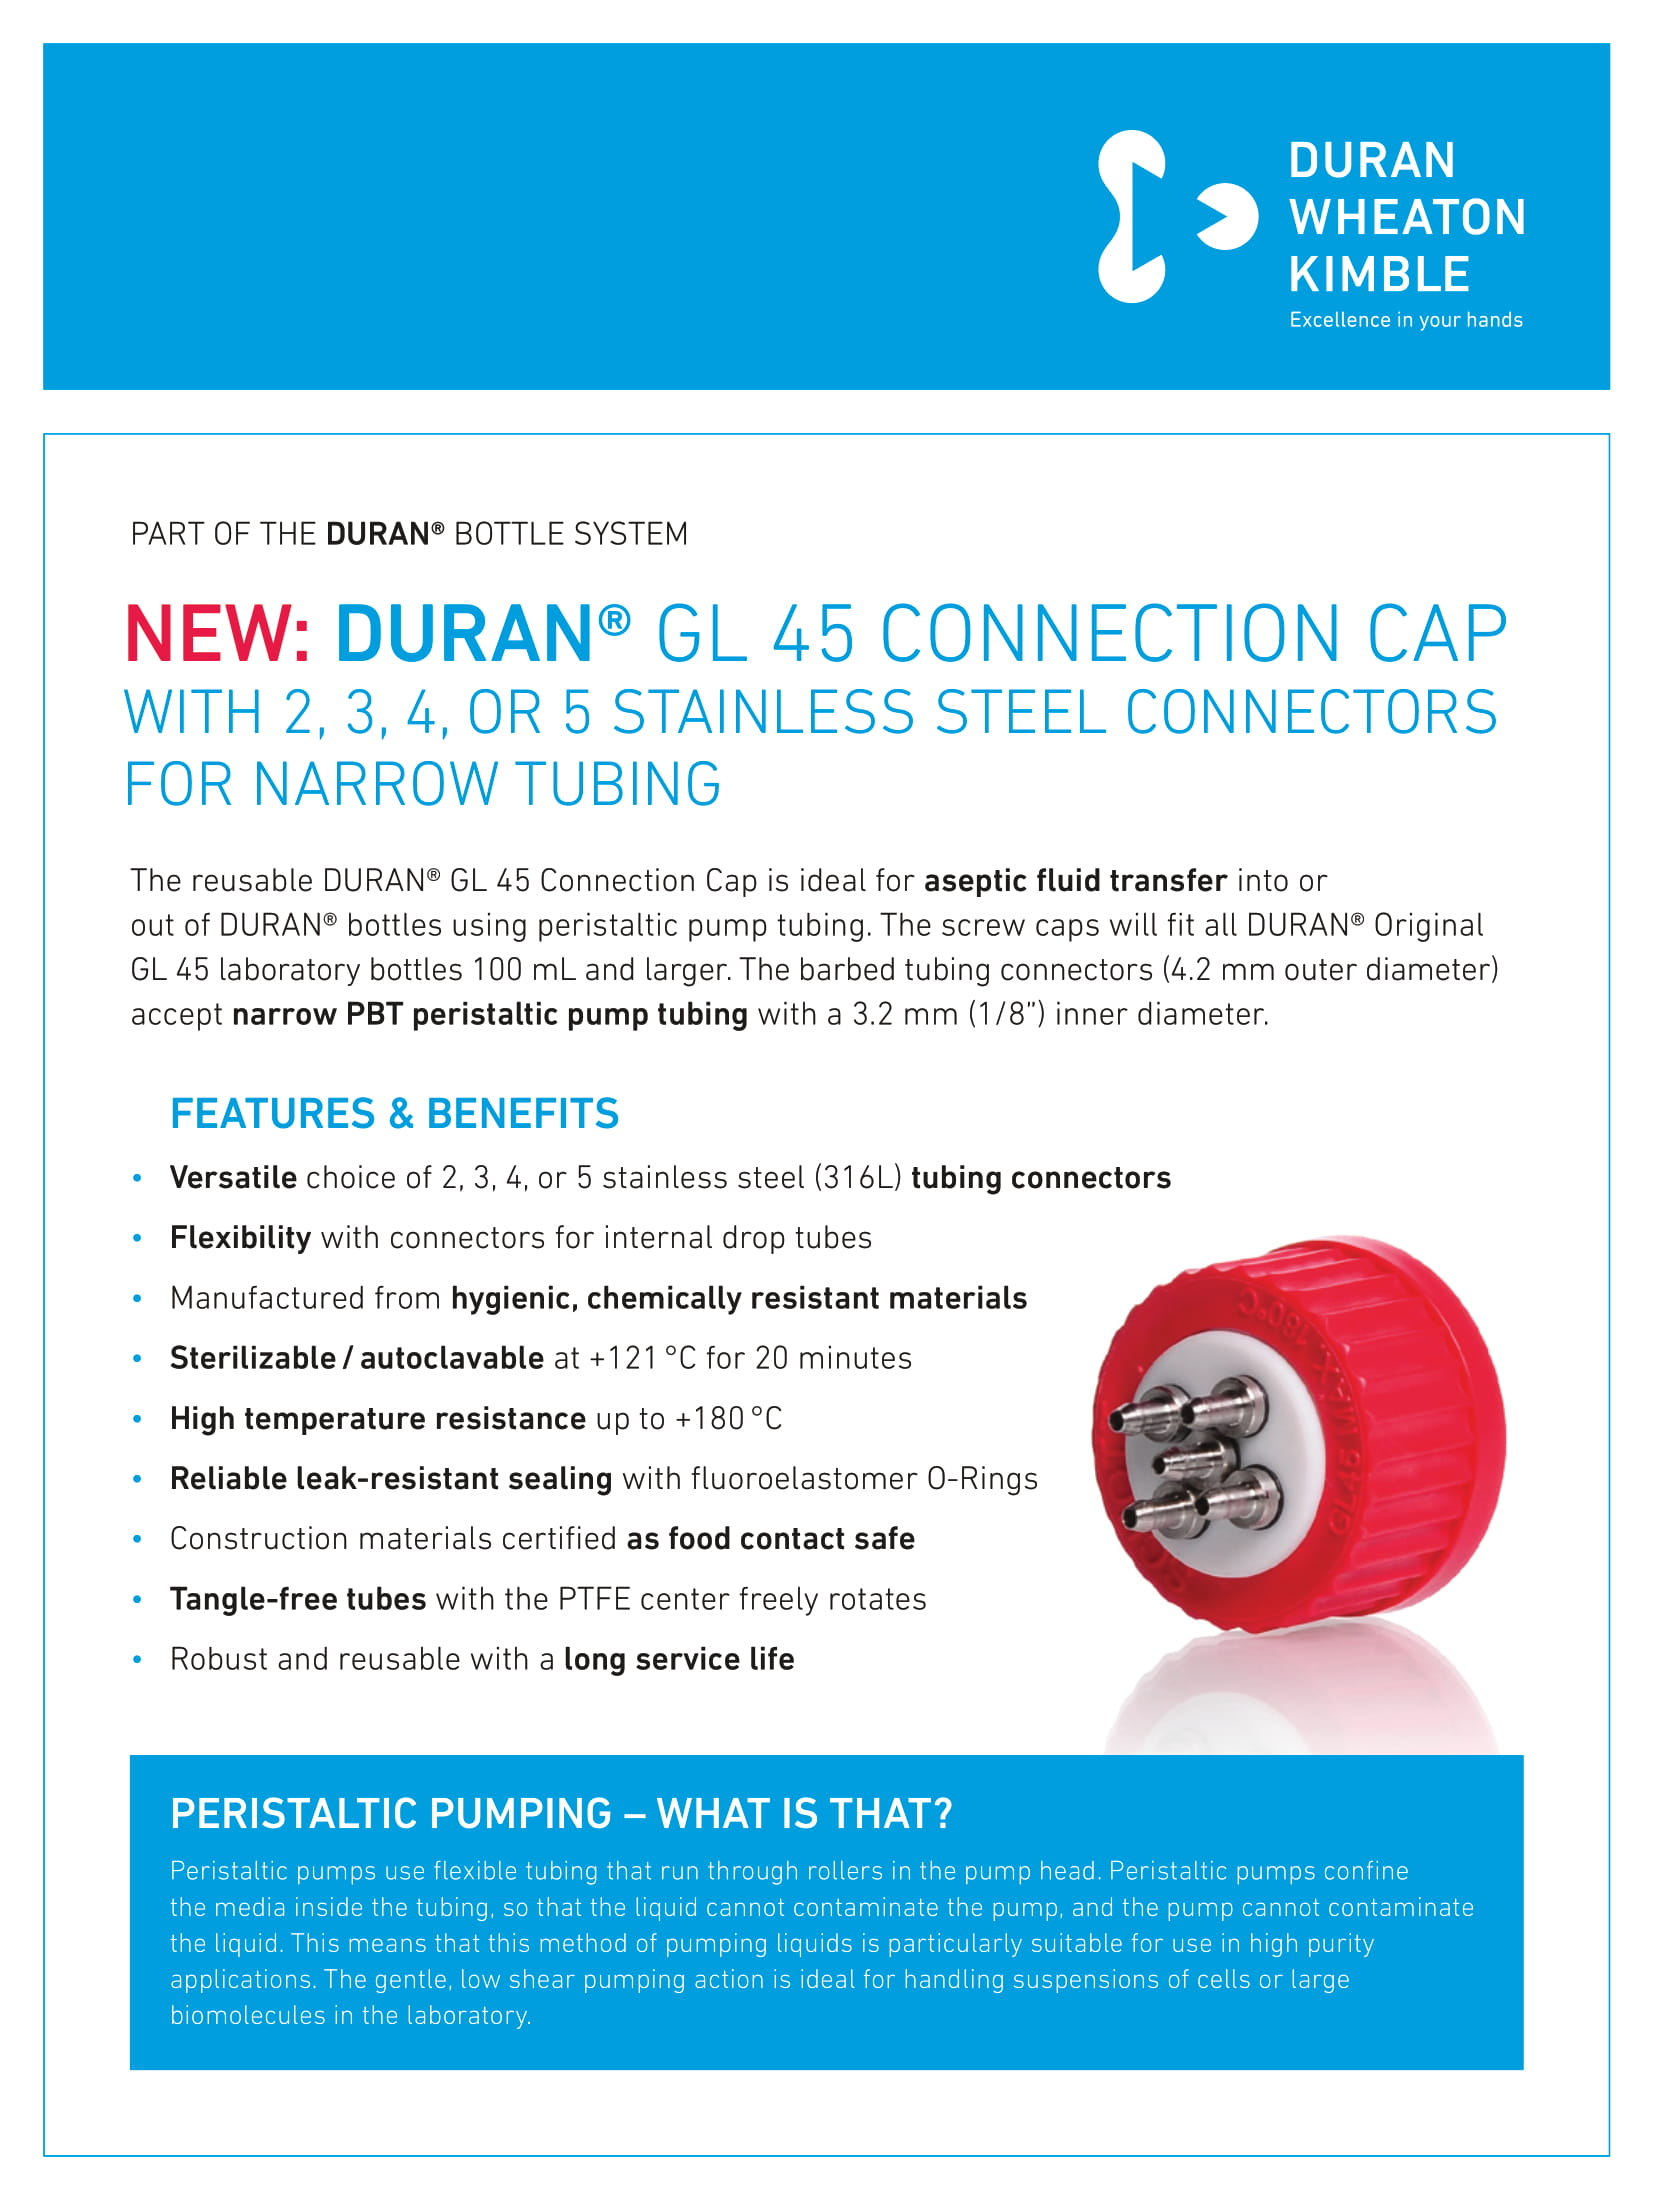 DURAN® GL 45 Connection Cap with 2, 3, 4 or 5 Stainless Steel Connectors